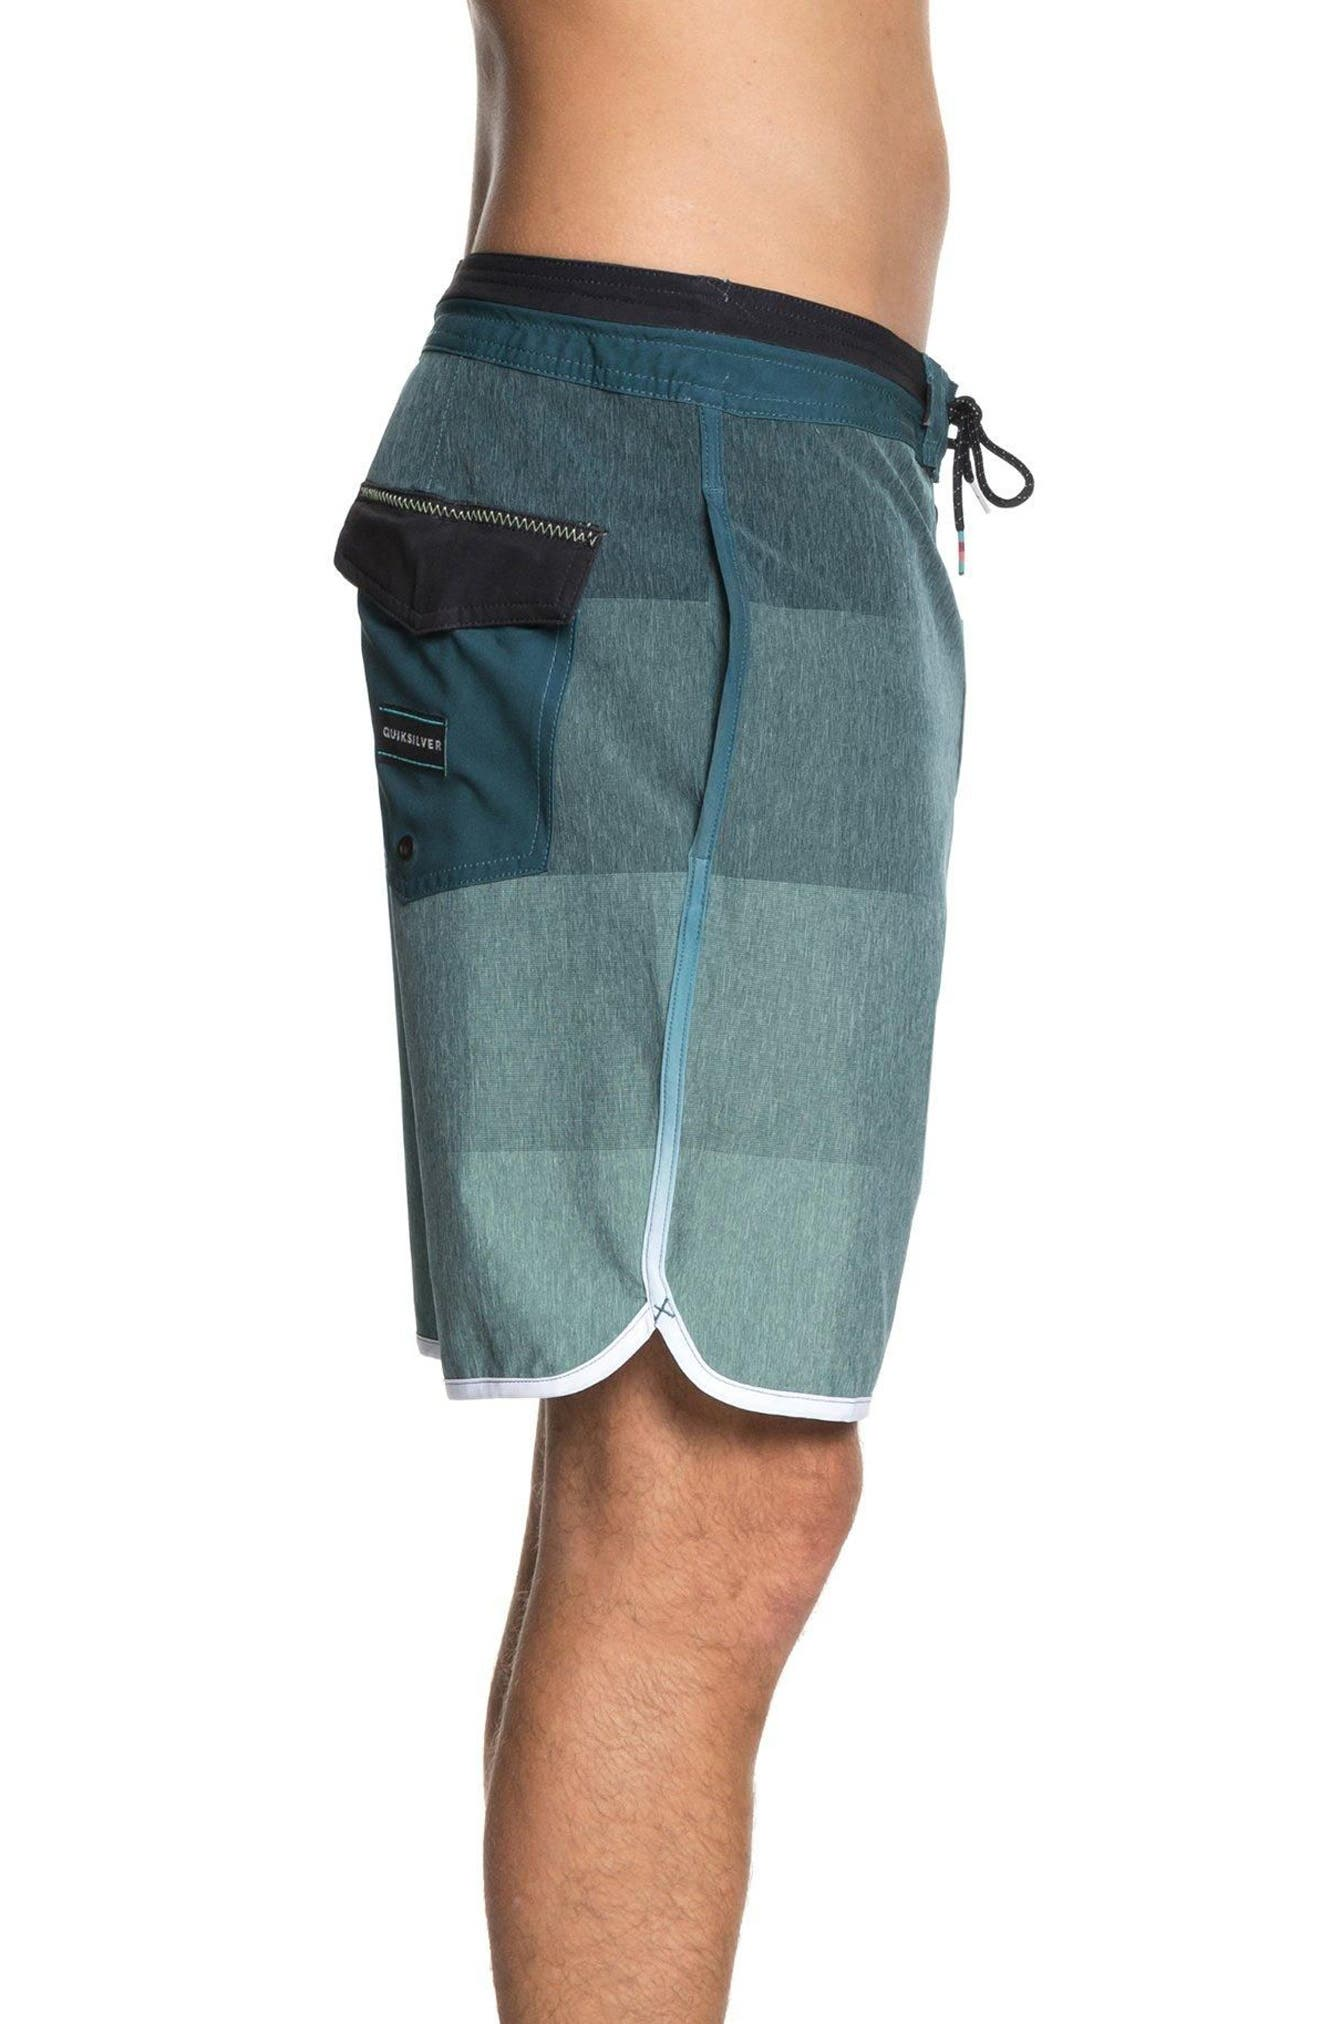 Vista Swim Shorts,                             Alternate thumbnail 3, color,                             406